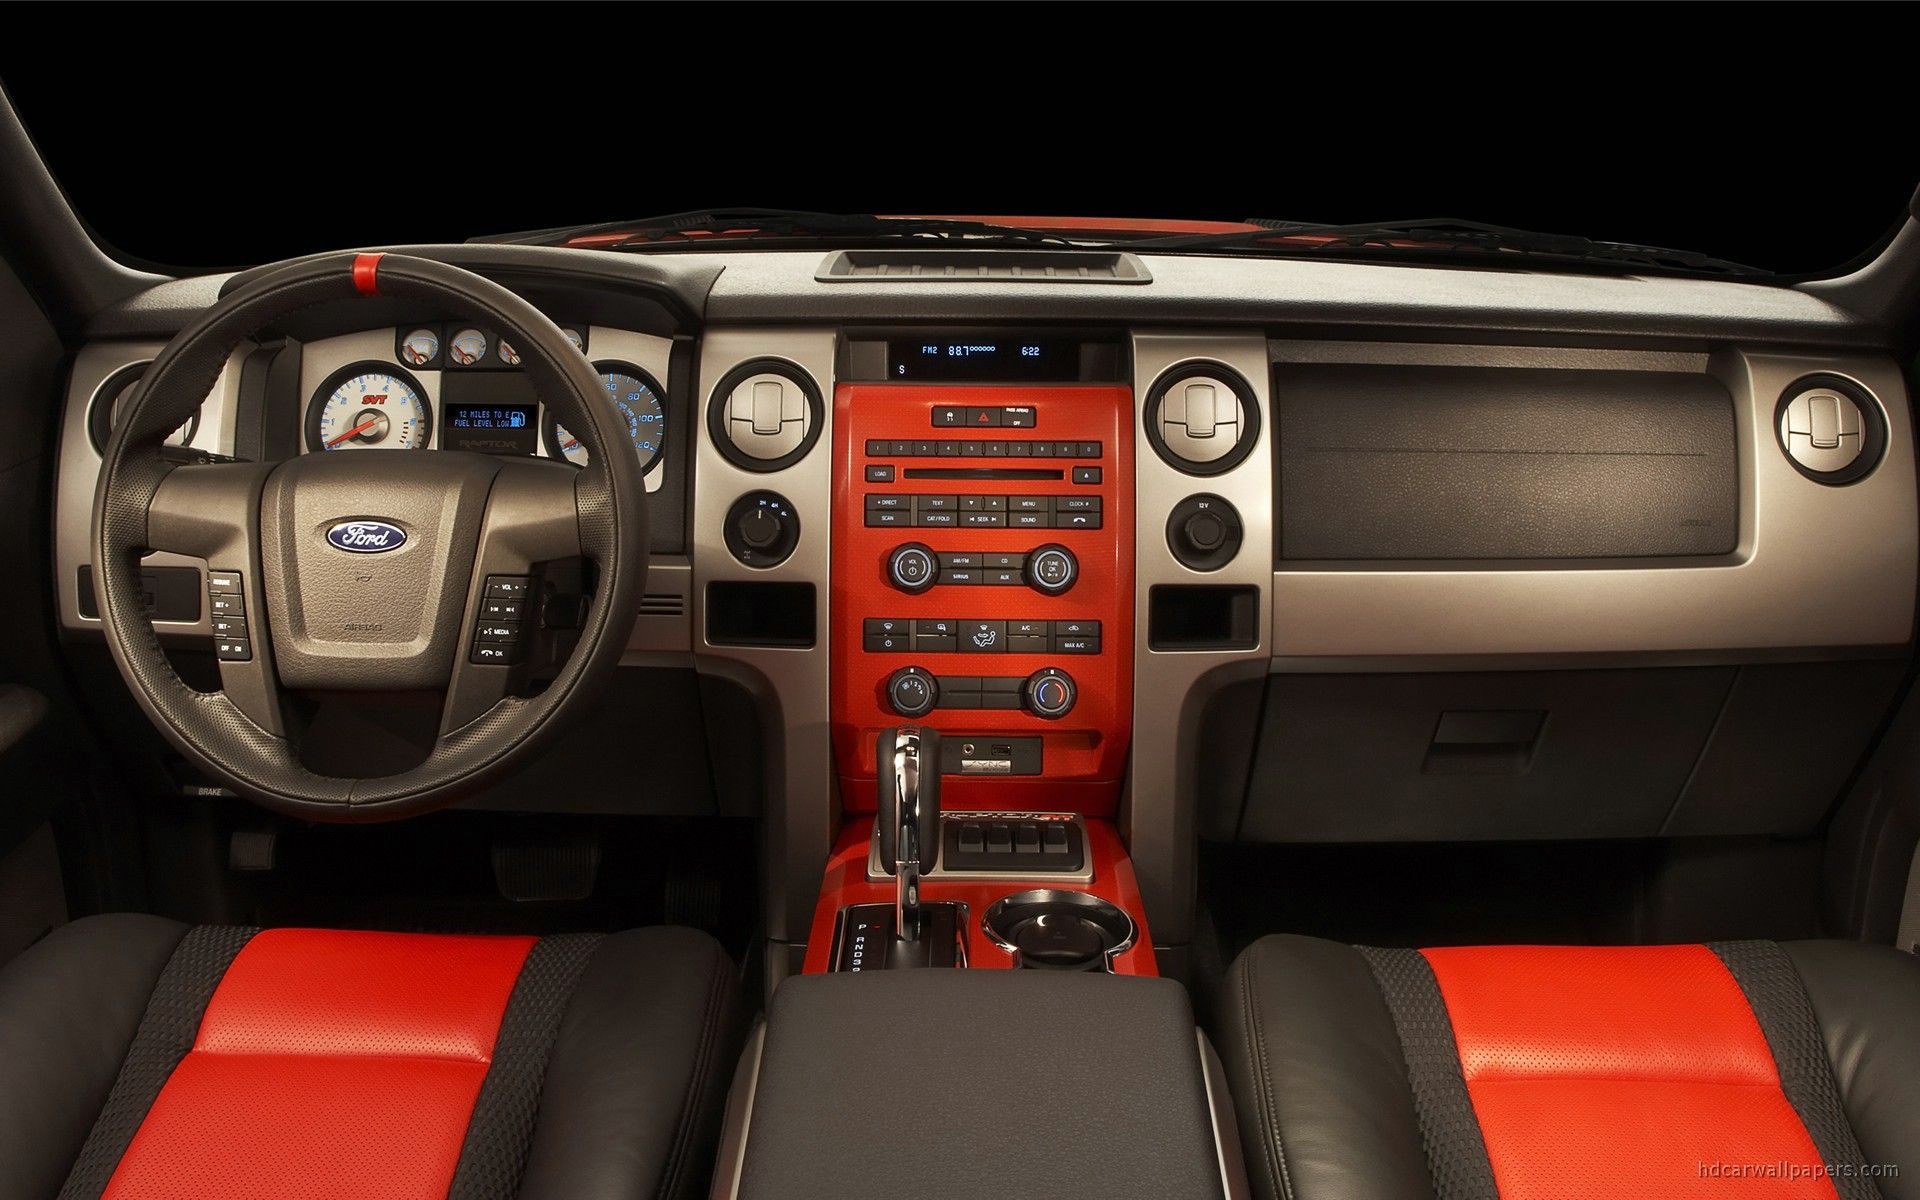 Ford f xlt stx lariat fx v awd free widescreen wallpaper 1680